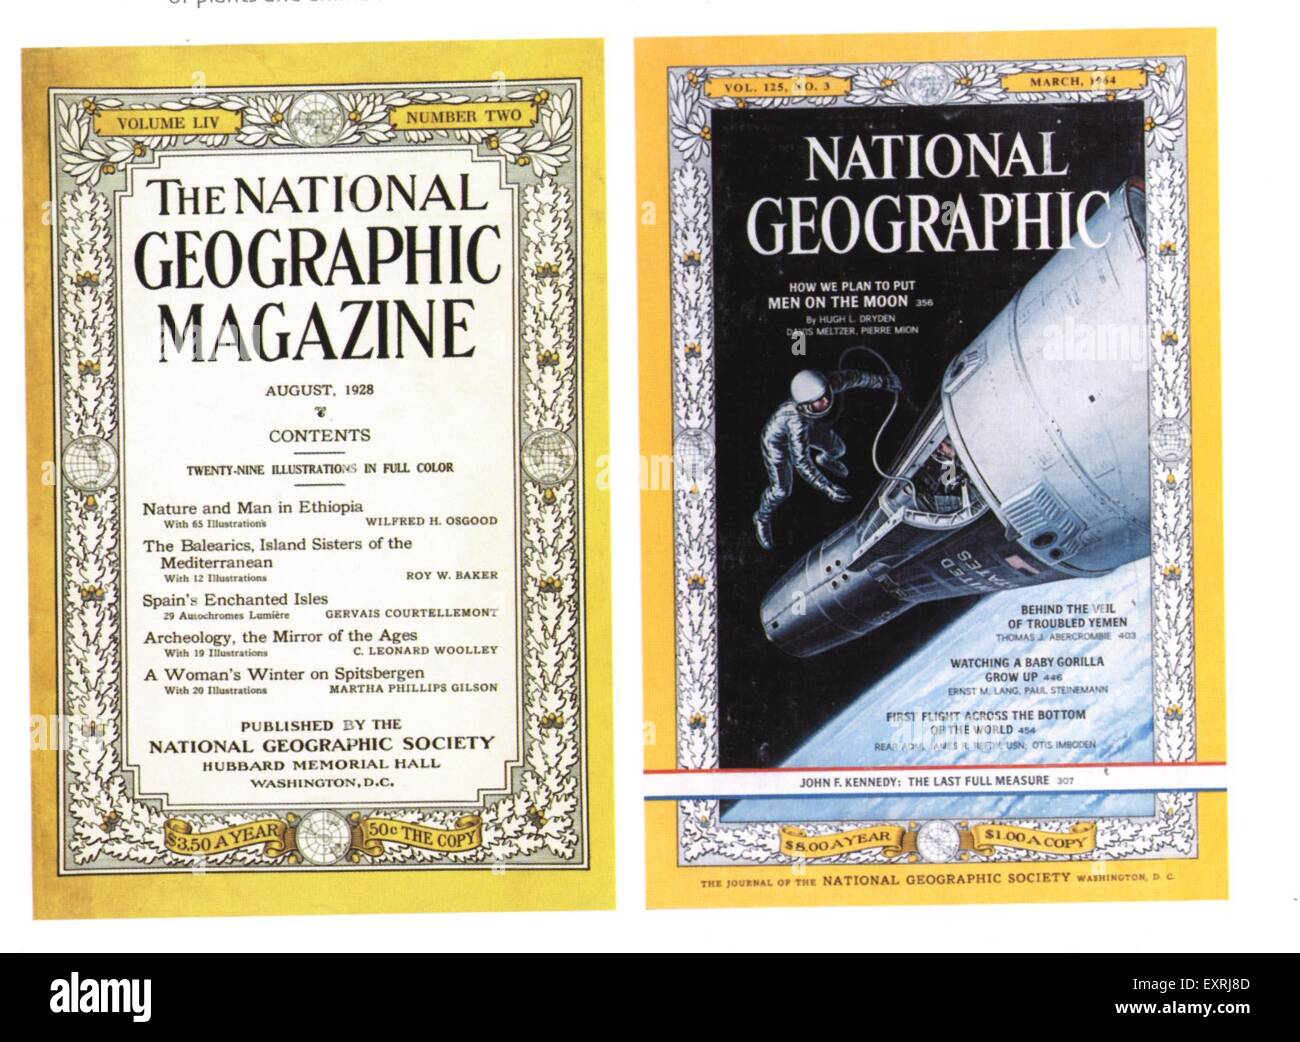 1960s USA National Geographic Magazine Cover - Stock Image